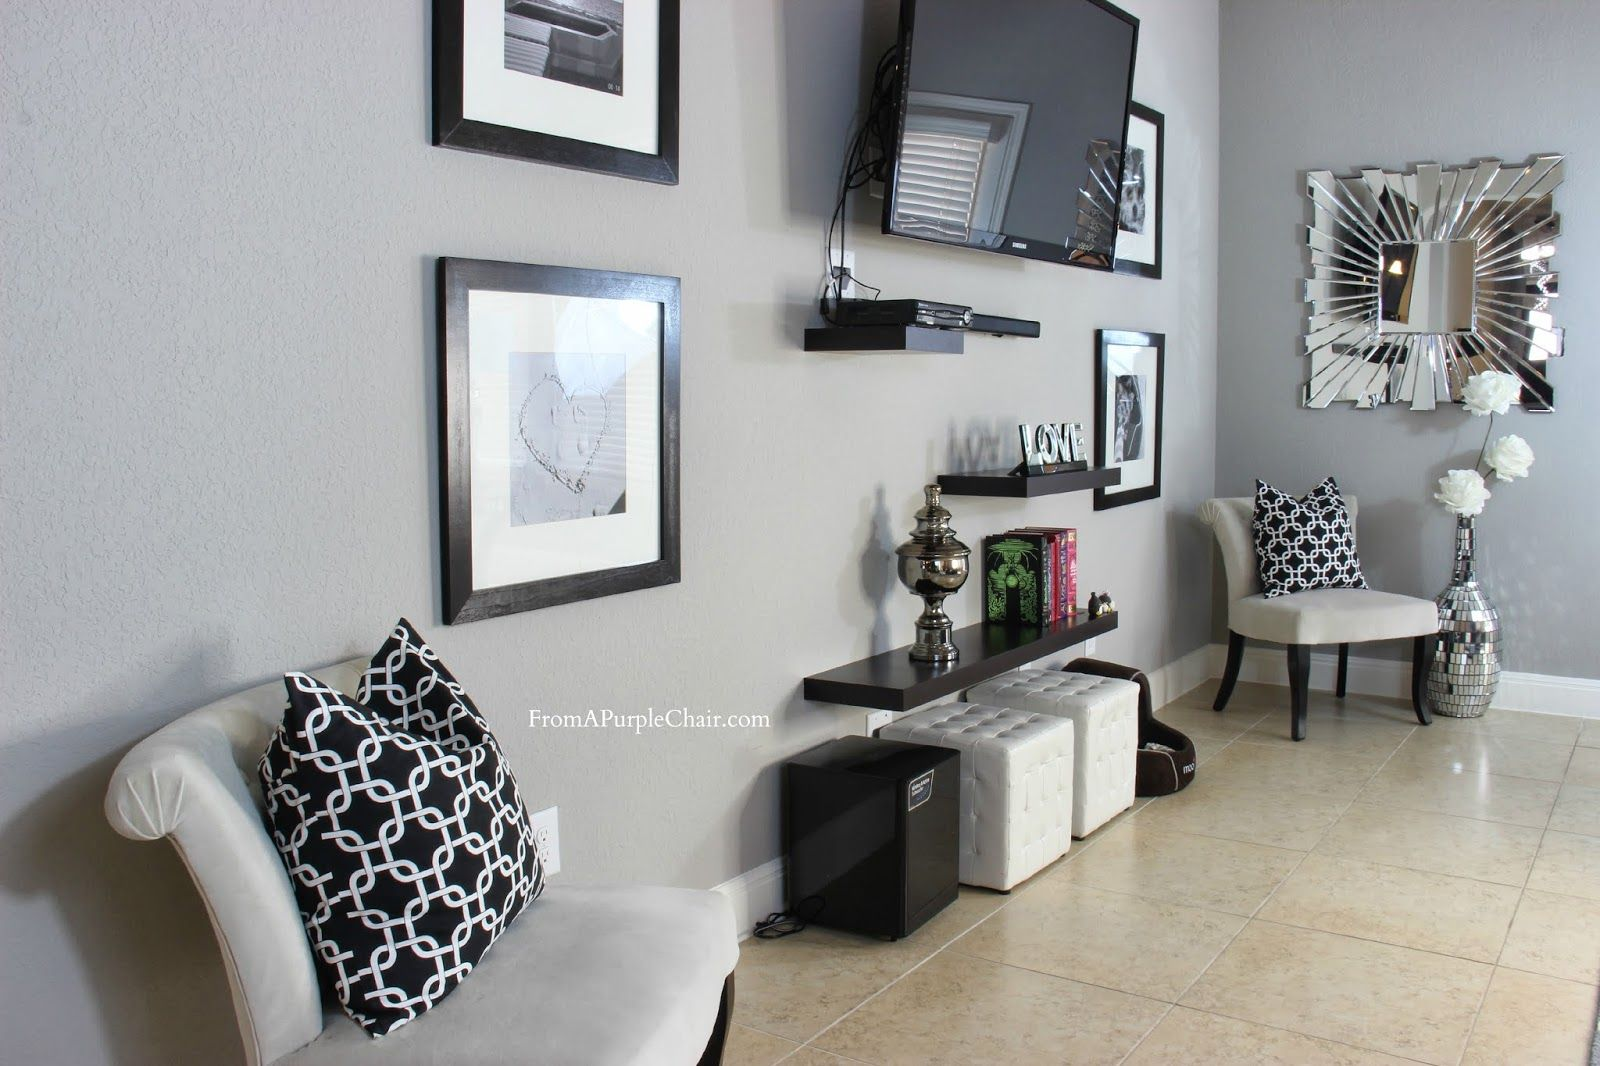 decorating living room with kirkland | We decided on adding our own ...